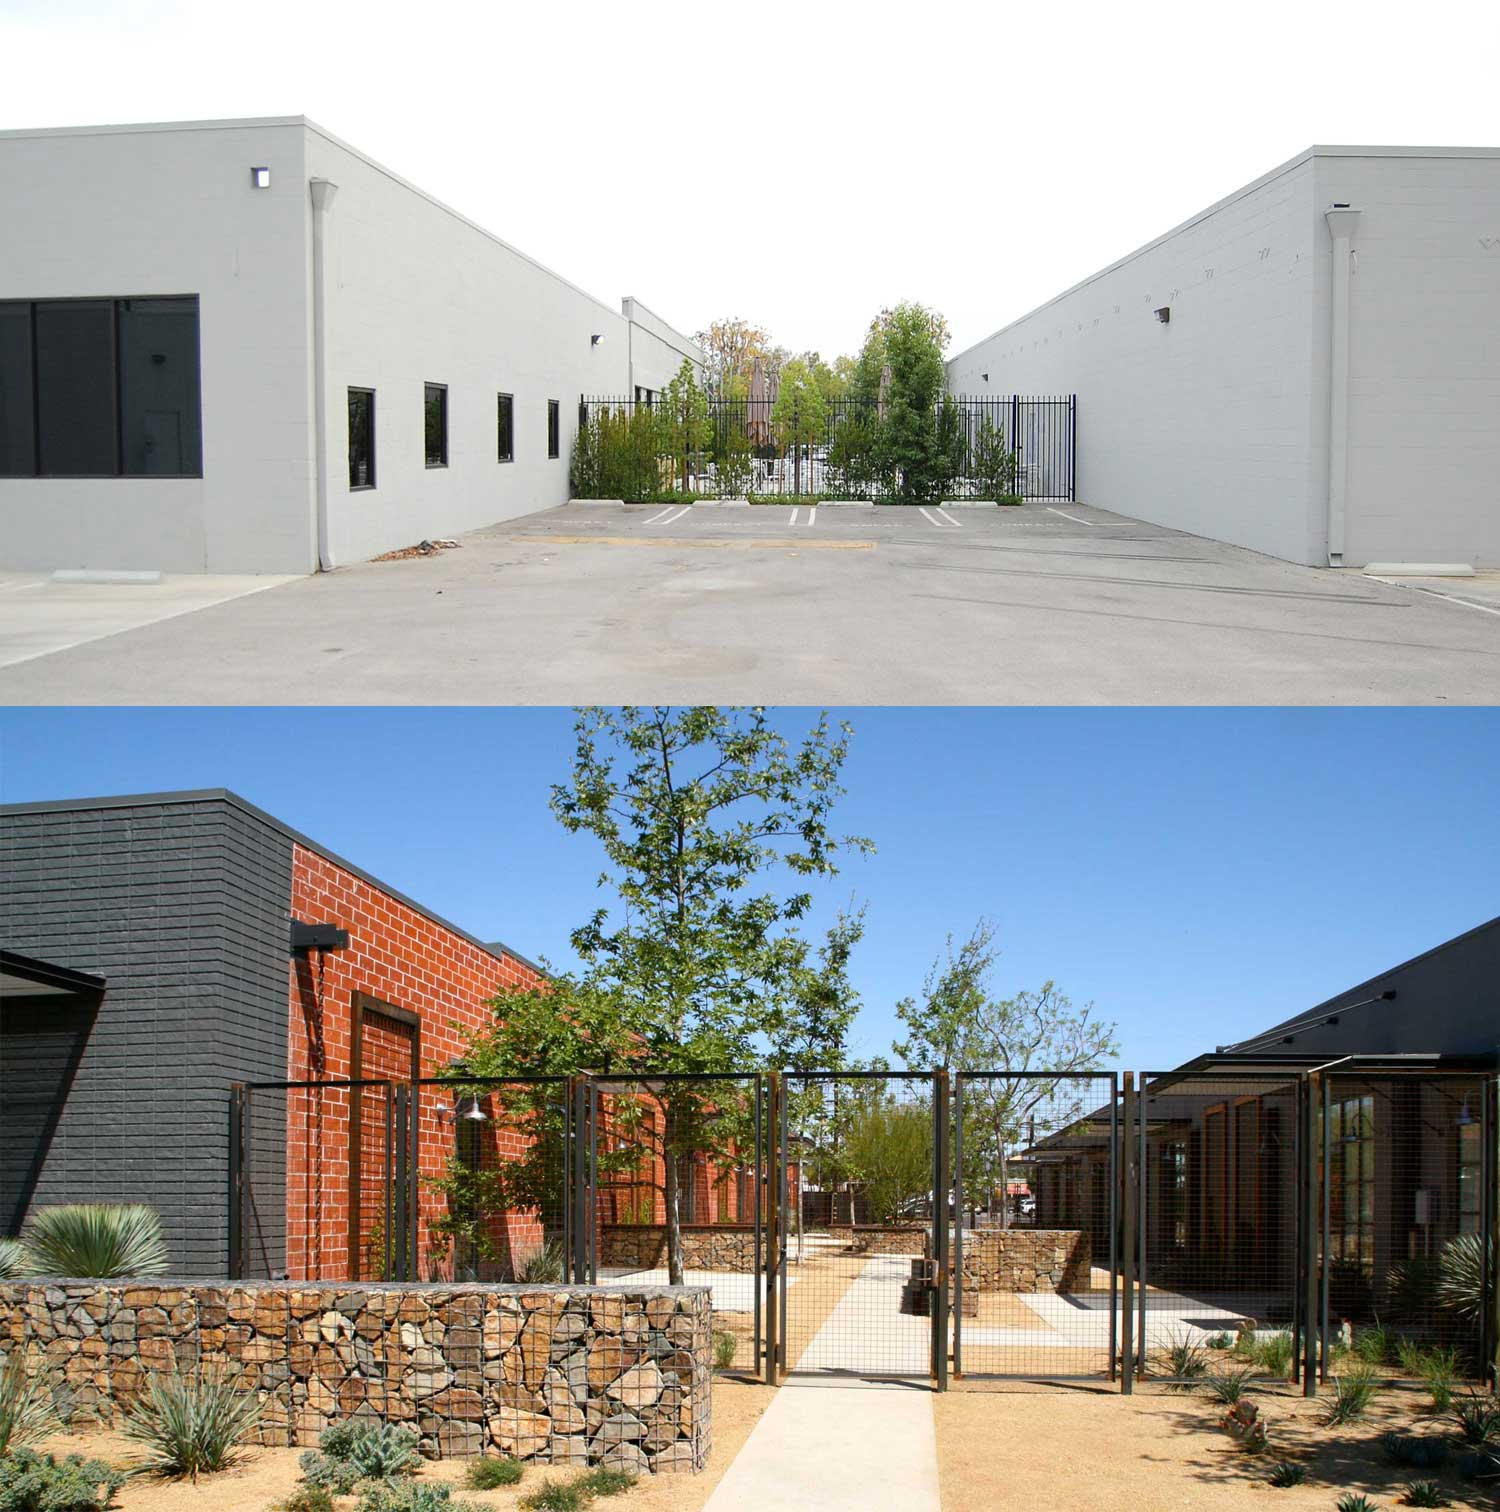 modern-architecture-commercial-building-worsplace-sustainable-adaptive-california-shubindonaldson-ranch-12